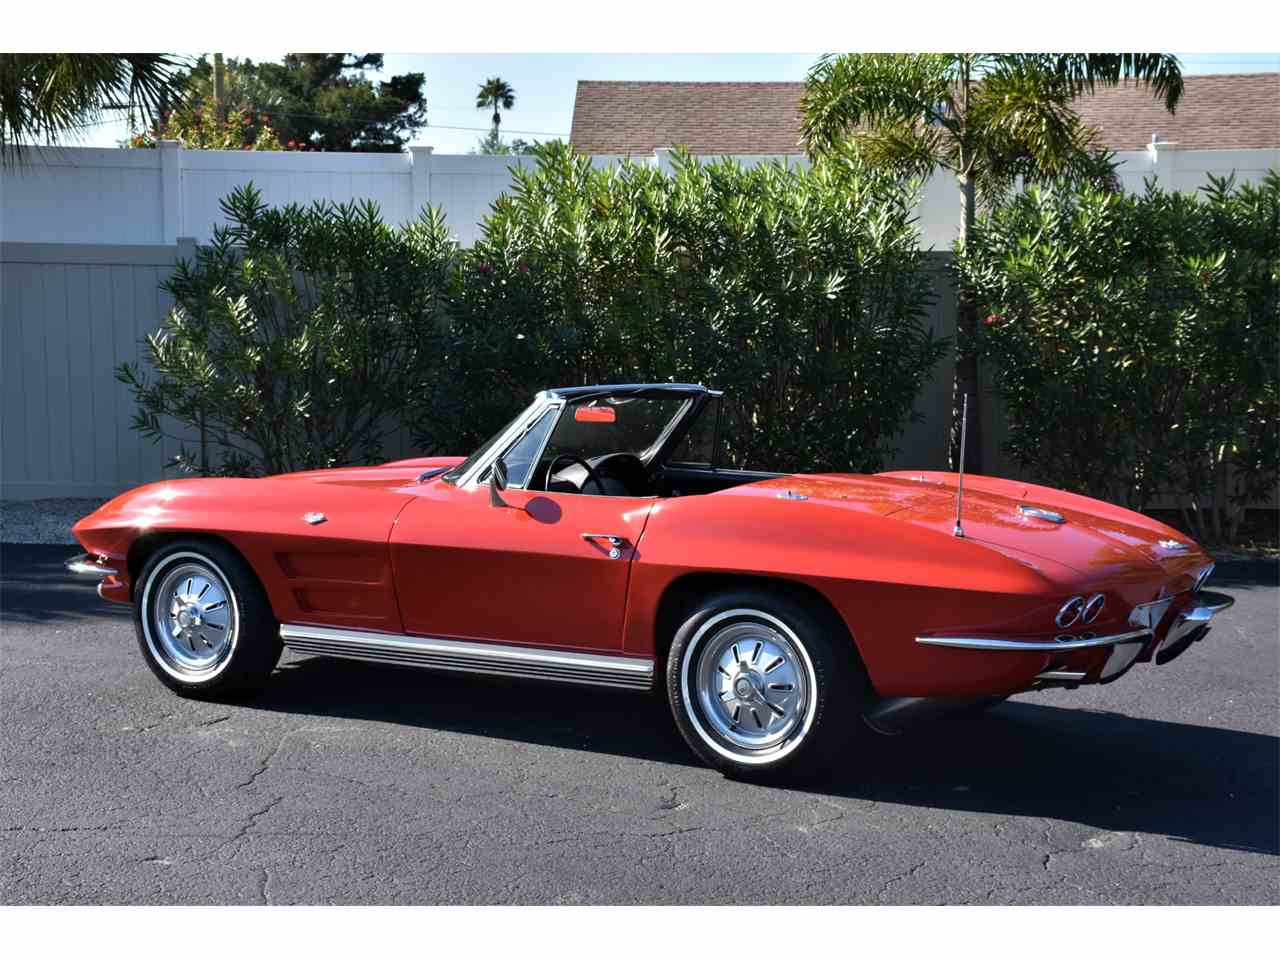 Large Picture of Classic '64 Chevrolet Corvette located in Florida Auction Vehicle Offered by Ideal Classic Cars - MCOS